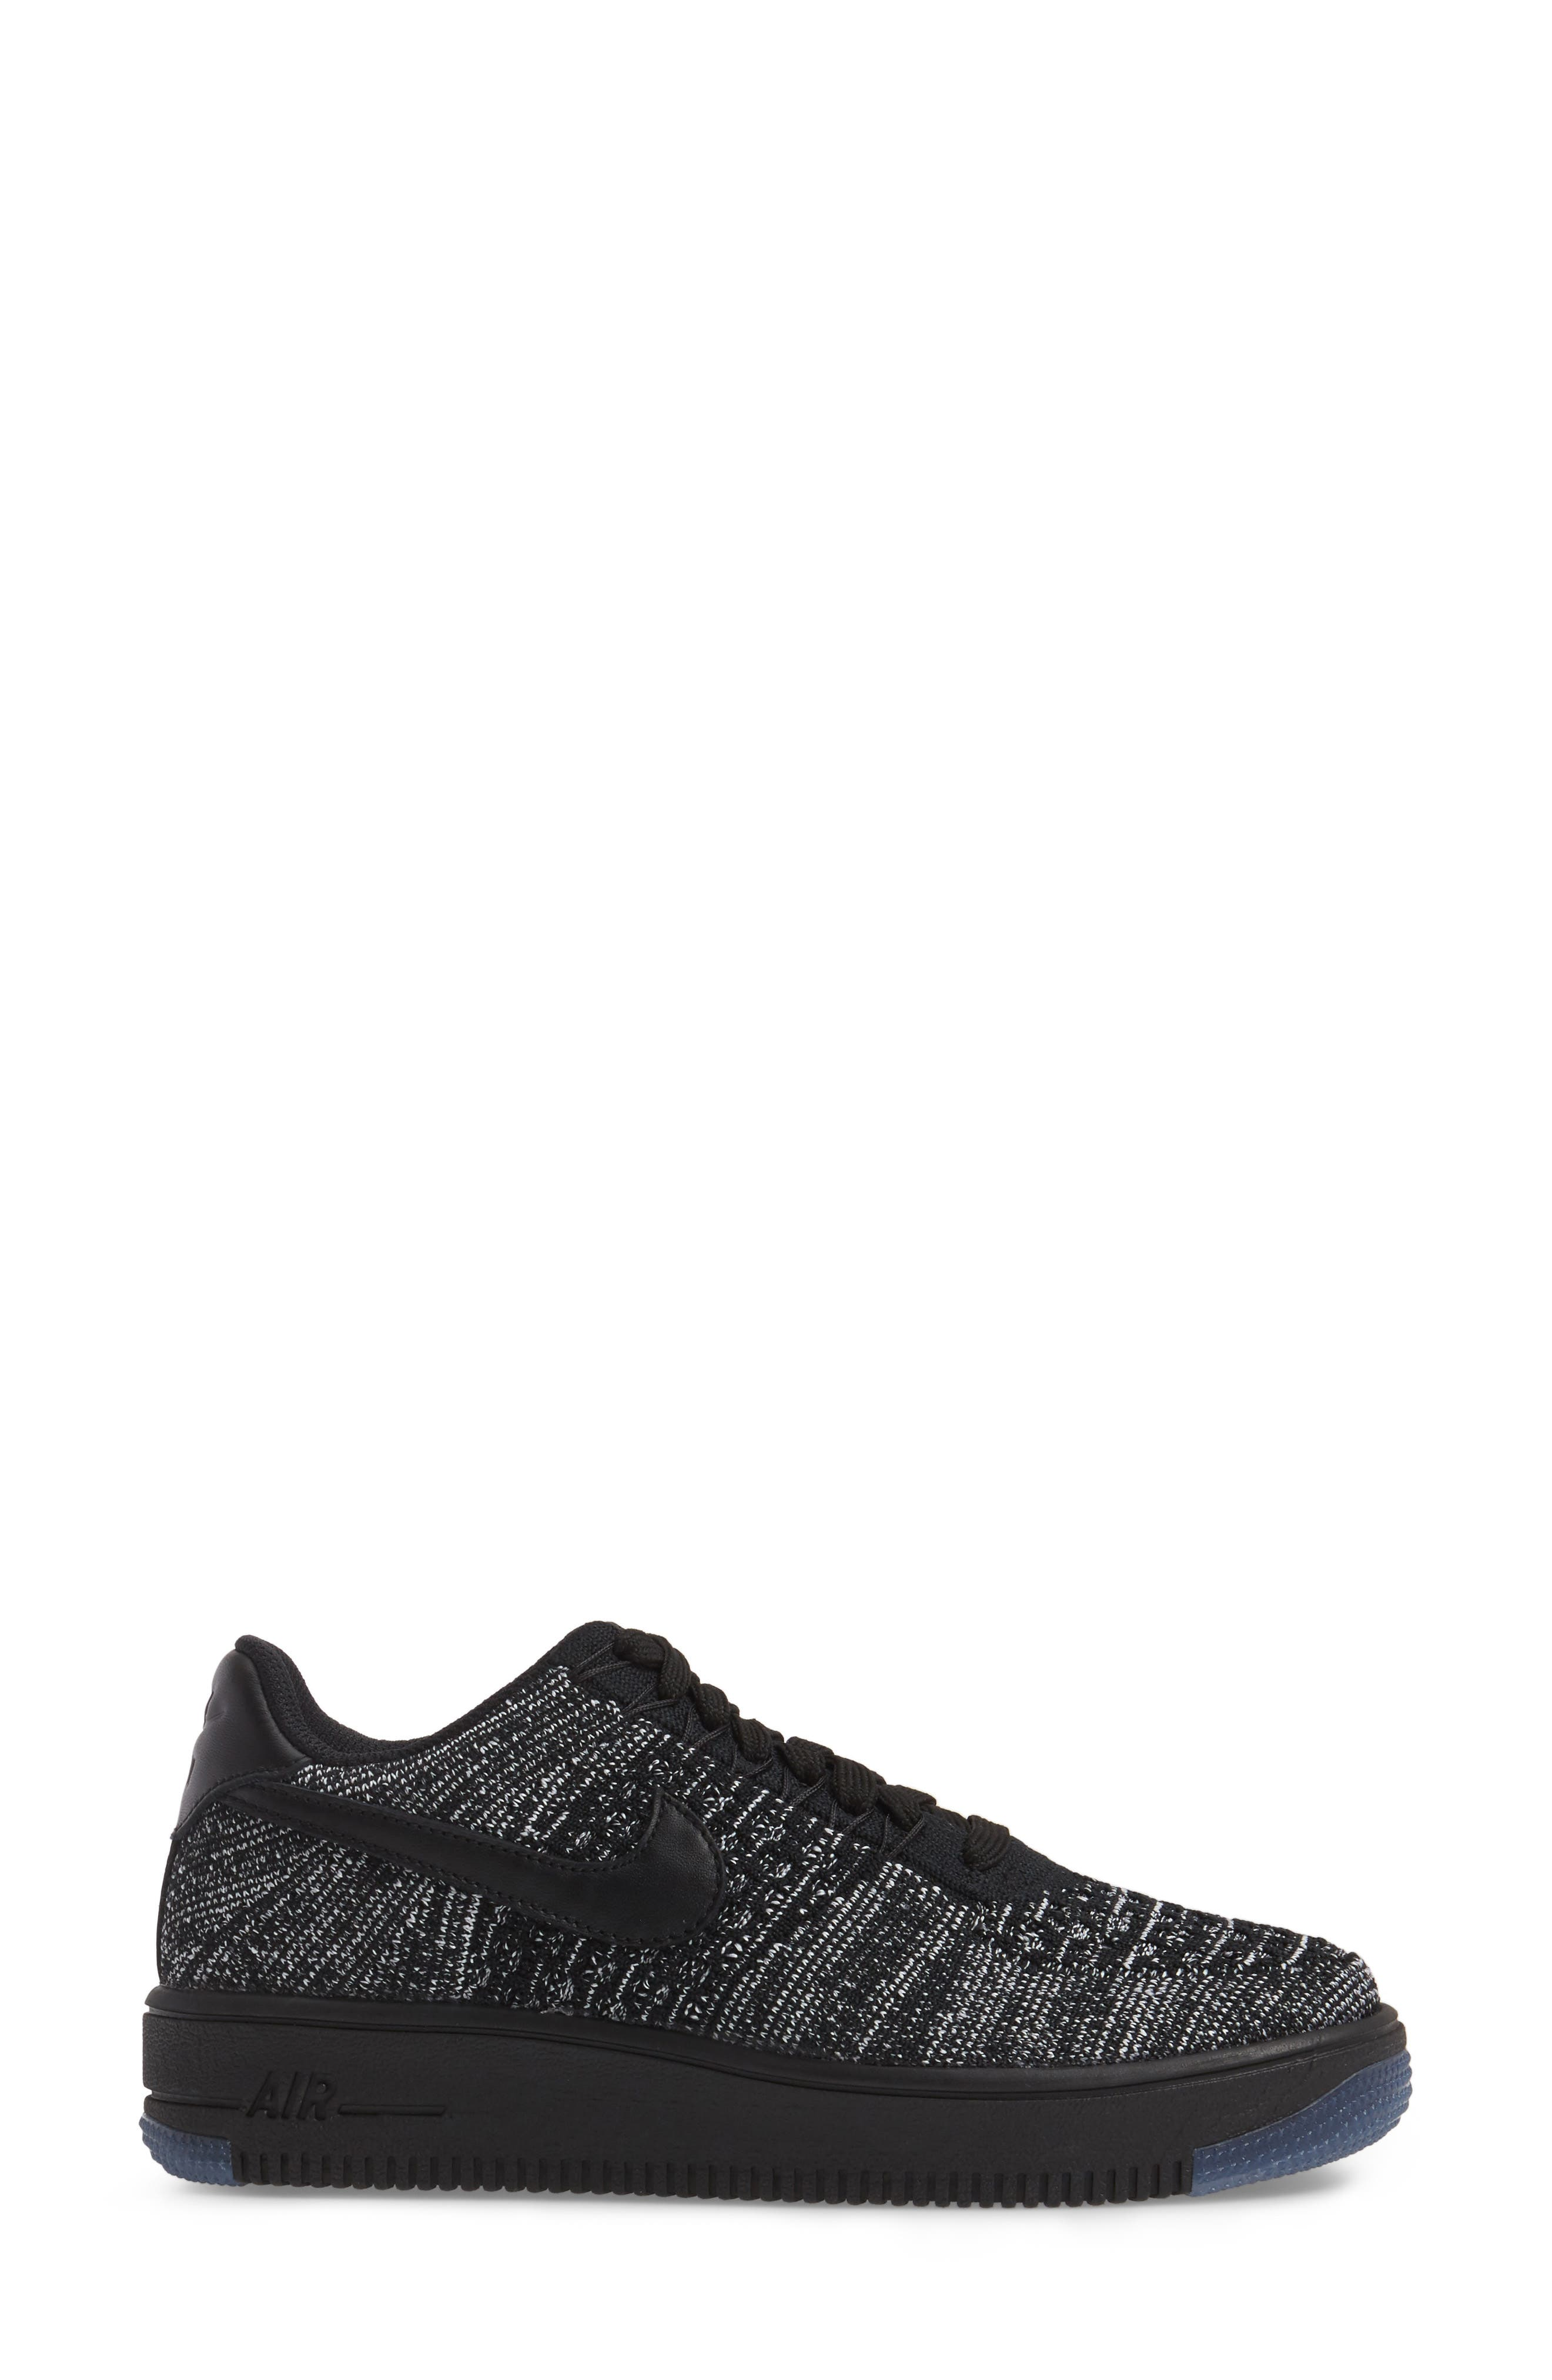 'Air Force 1 Flyknit Low' Sneaker,                             Alternate thumbnail 16, color,